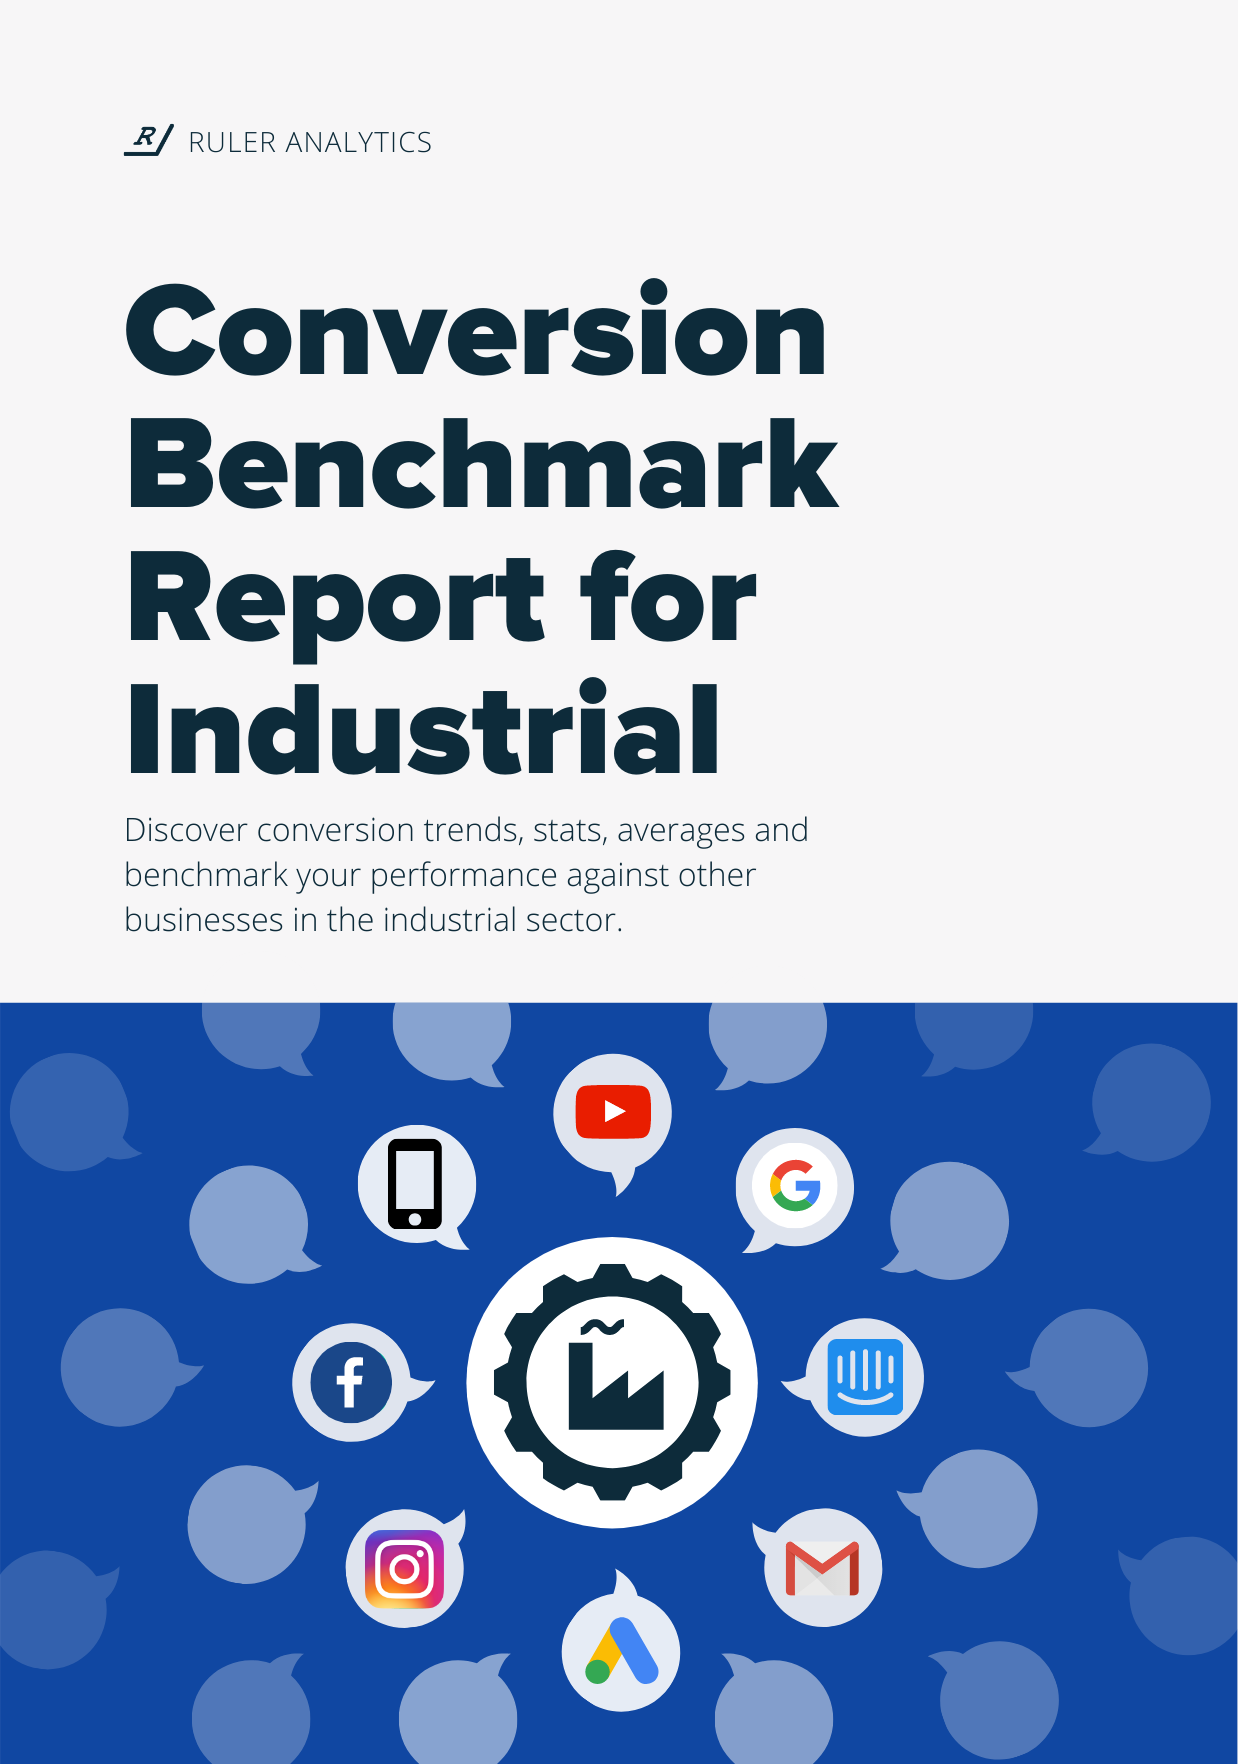 Conversion Benchmark Report for Industrial